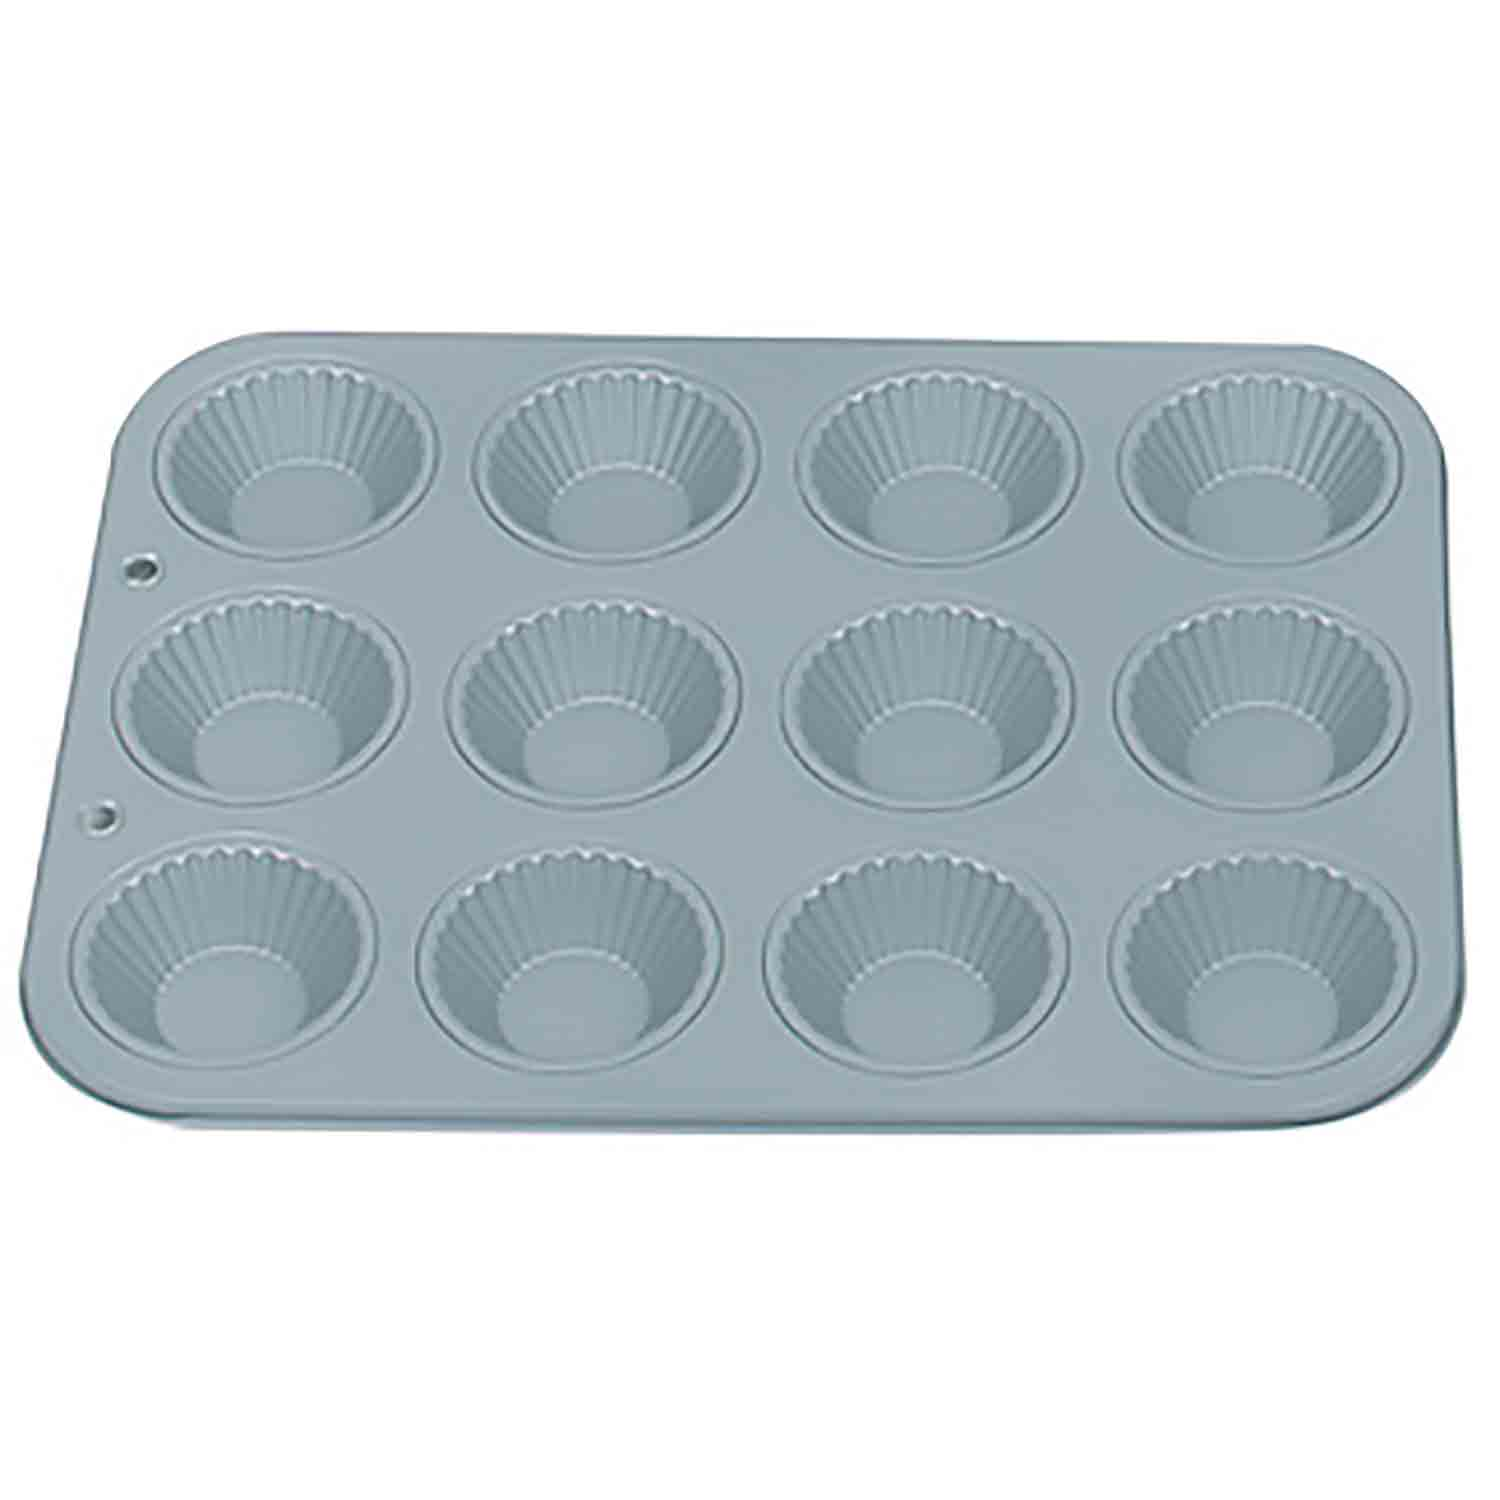 Bite-Size Ribbed Tart Pan